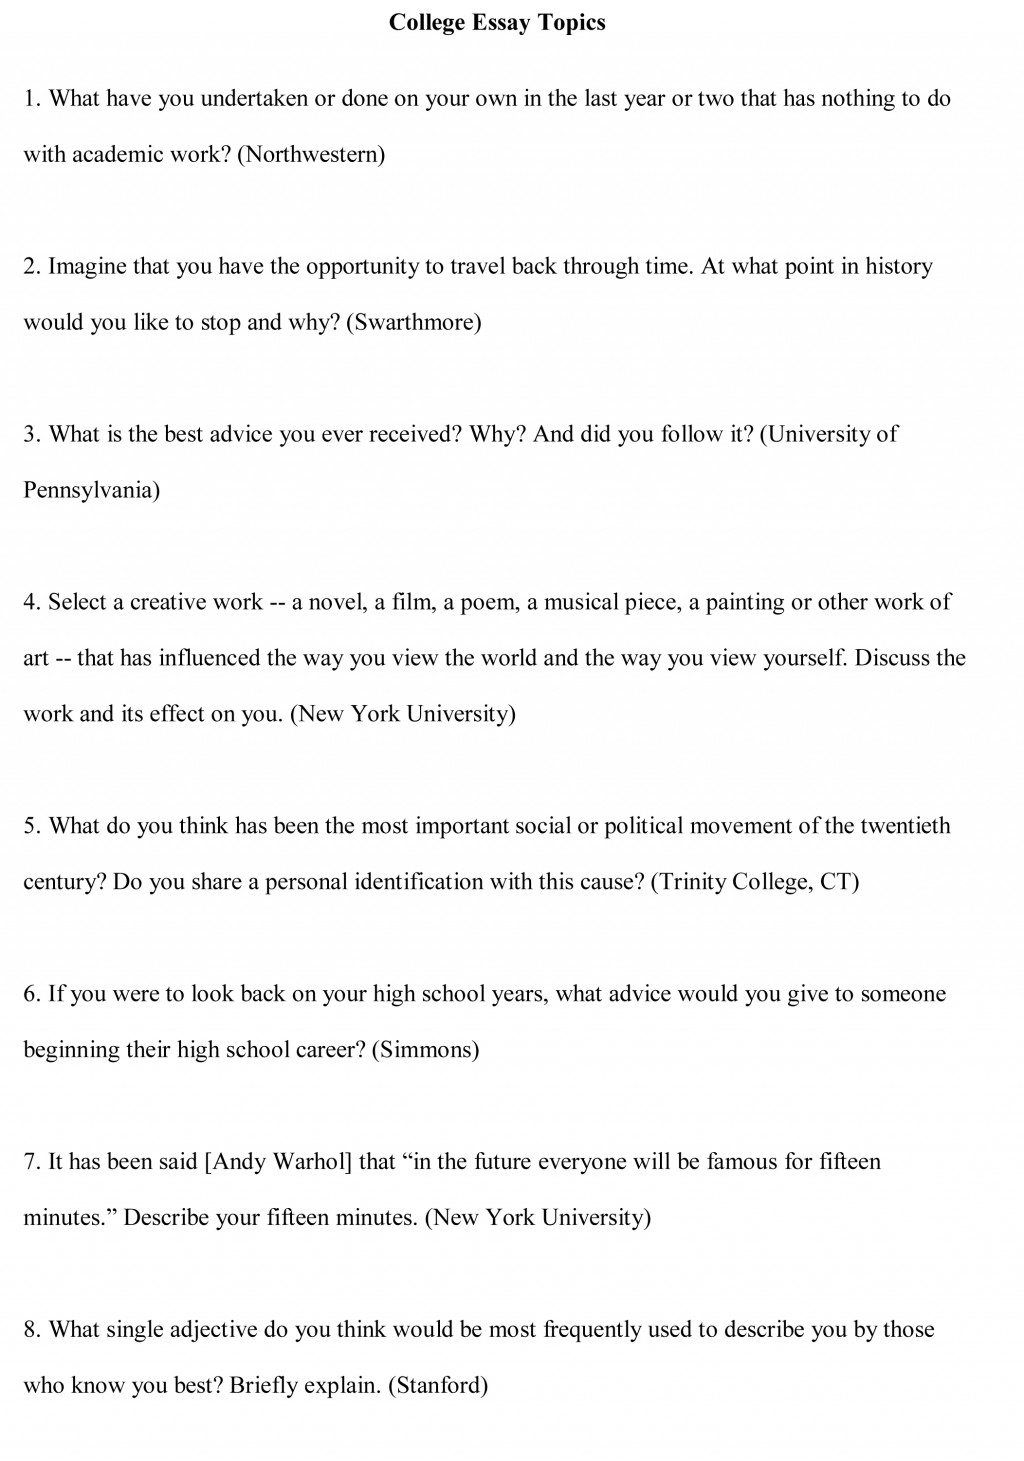 003 College Essay Topics Free Sample1 Prompts Impressive Writing Prompt Examples Amherst 2017 Pomona Large